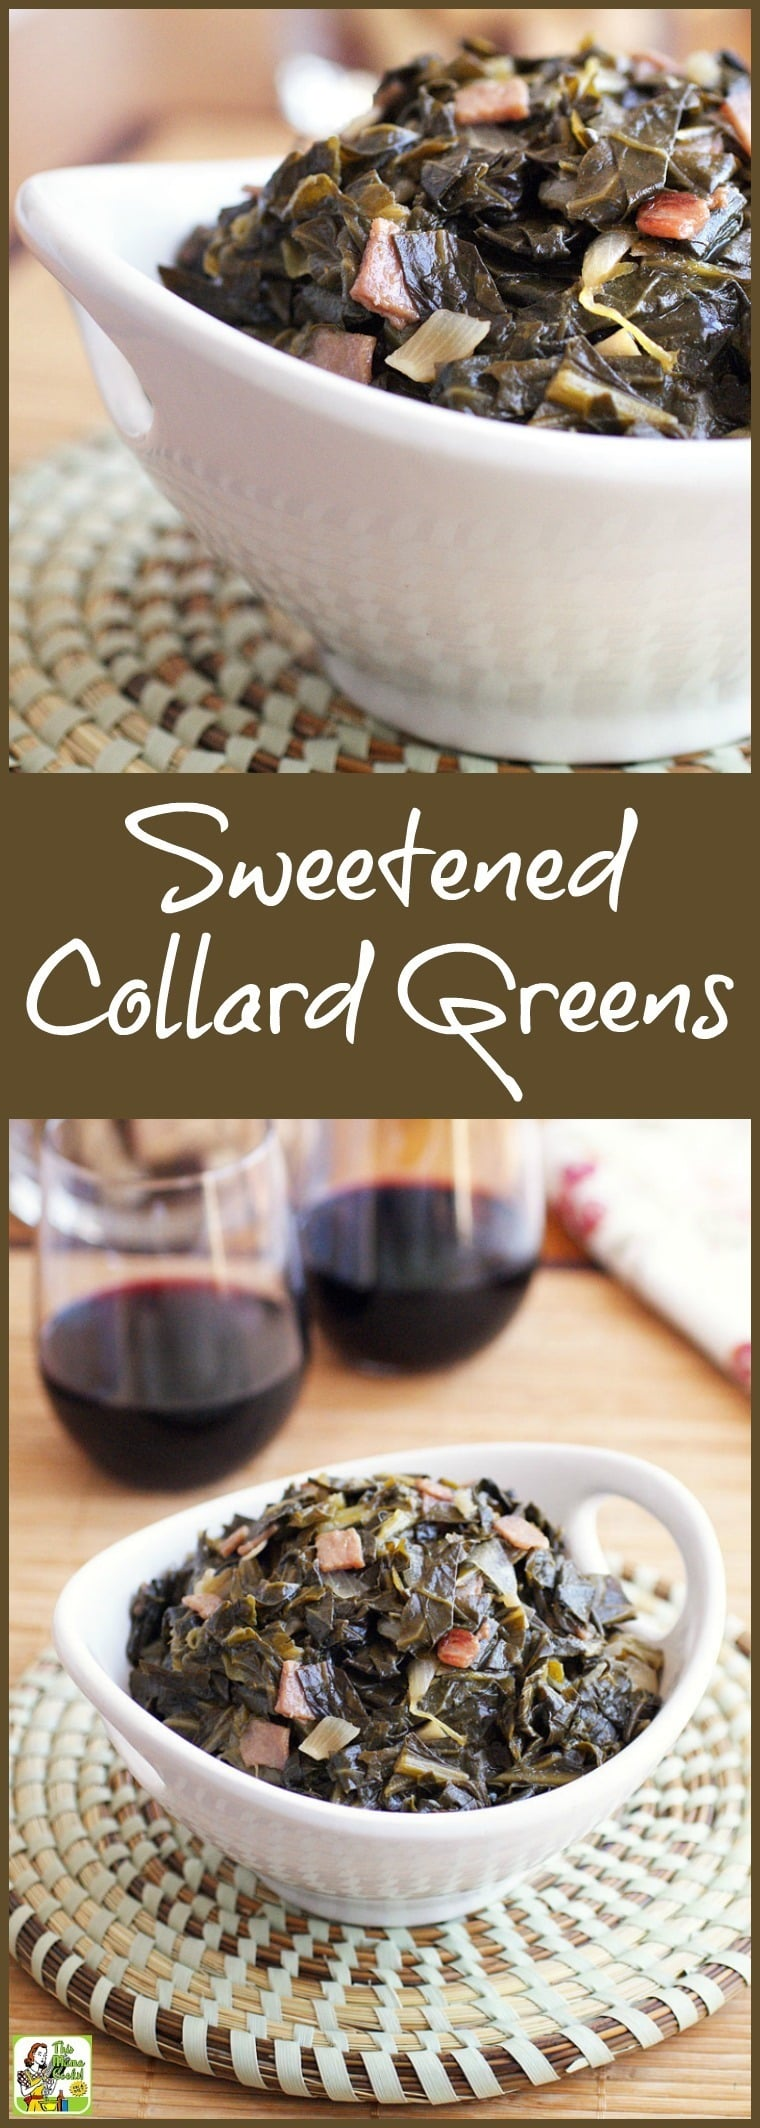 If you love Southern cooking and collard greens, then you need to try out this Sweetened Collard Greens recipe. Click to get this easy and healthy recipe!